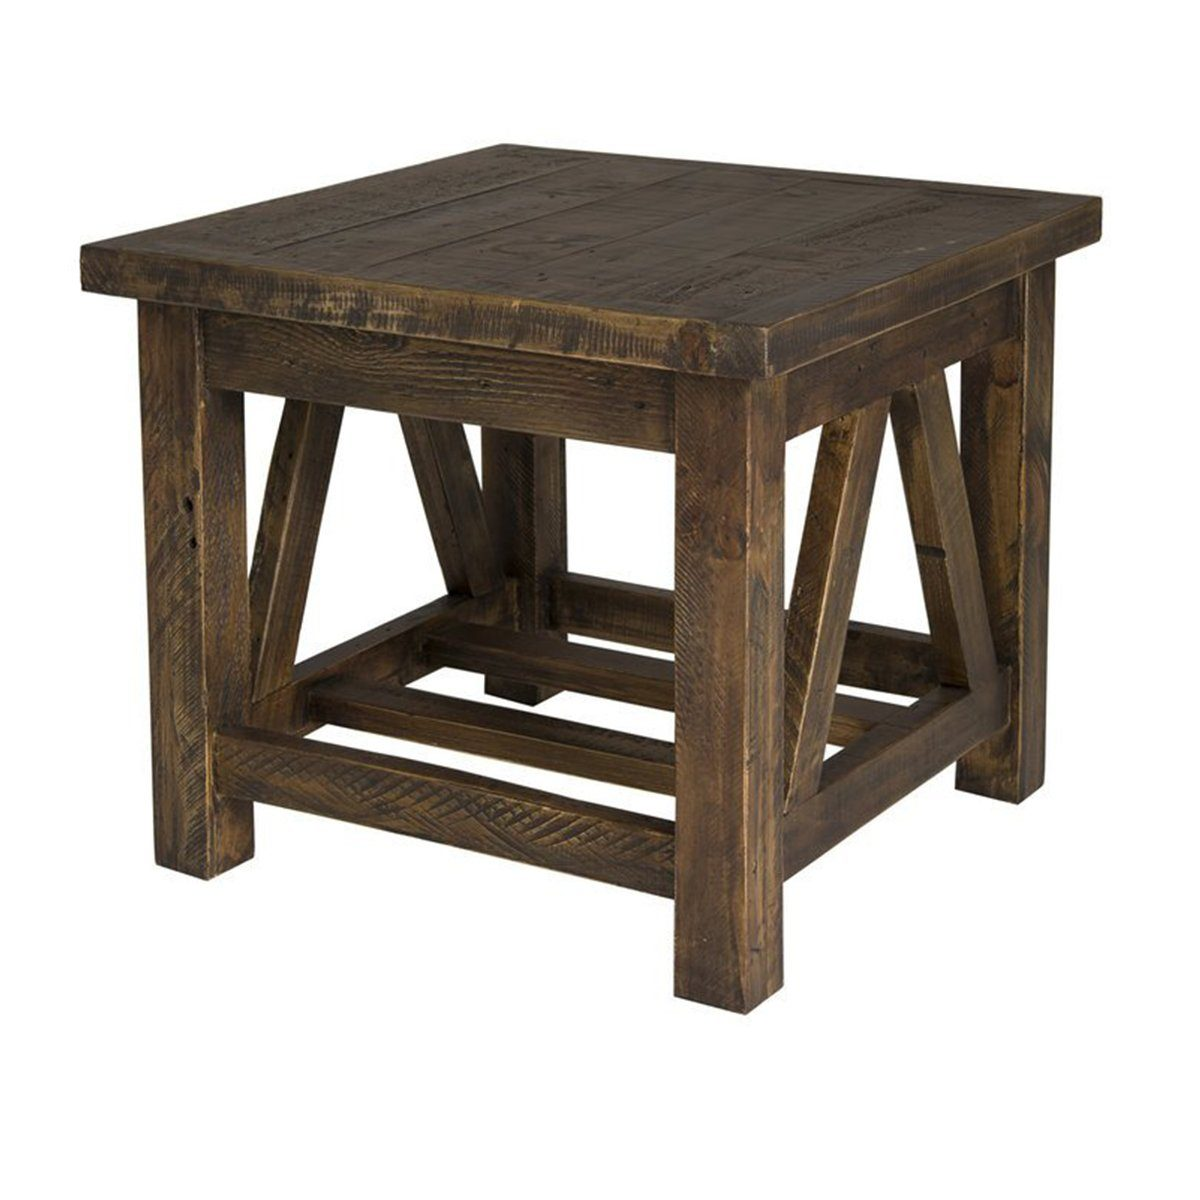 Solid Recycled Pine Wood Side Table - Smokey Brown Side Table LH